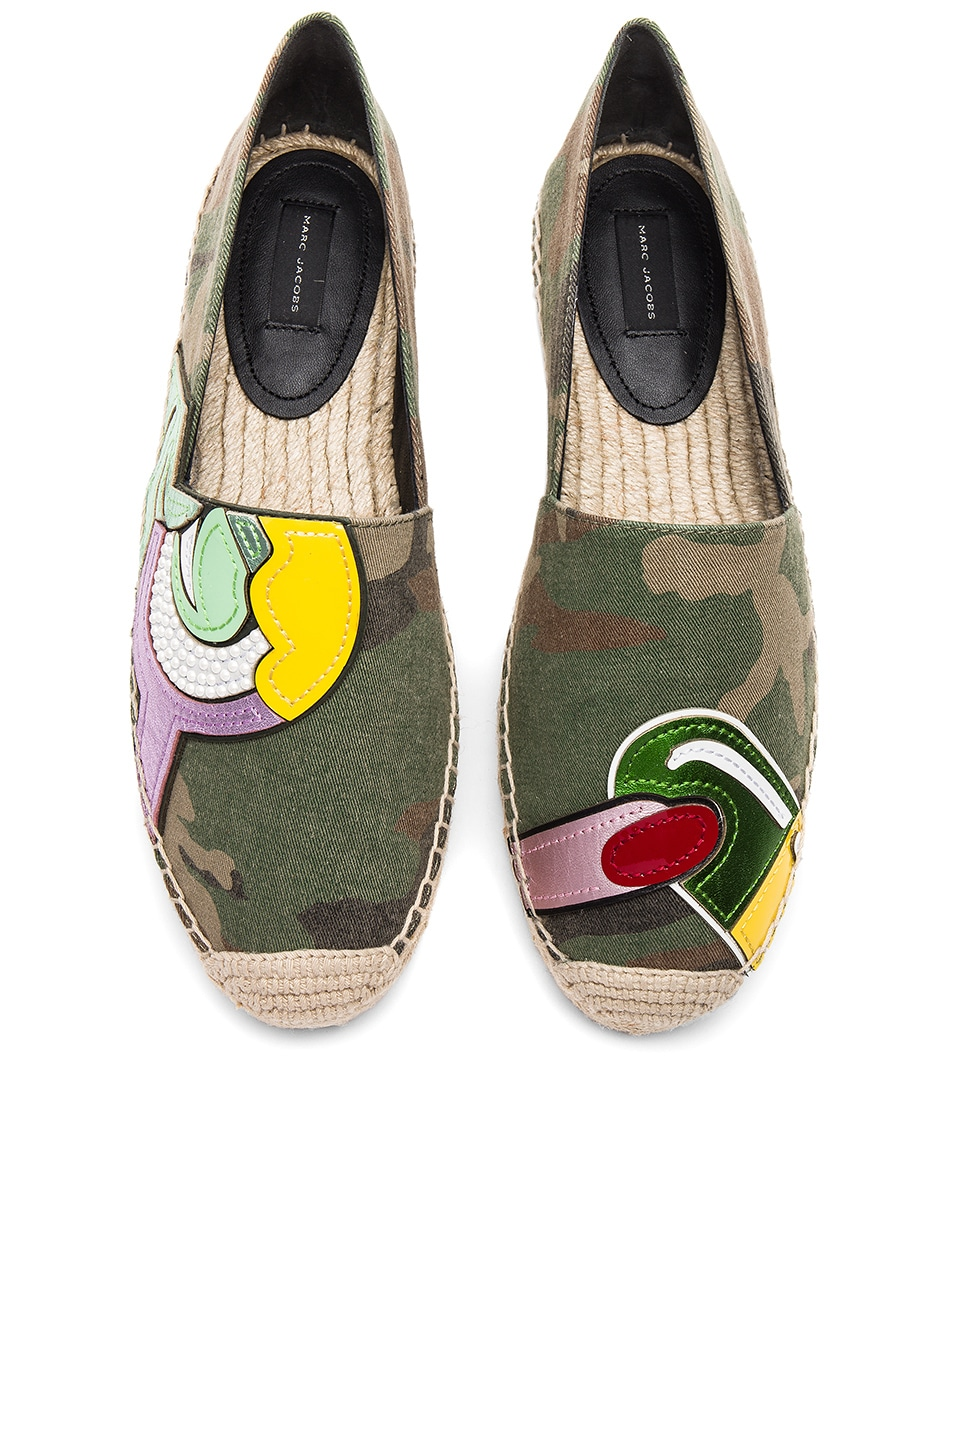 Marc Jacobs Sienna Pill Espadrille in Military Green Multi